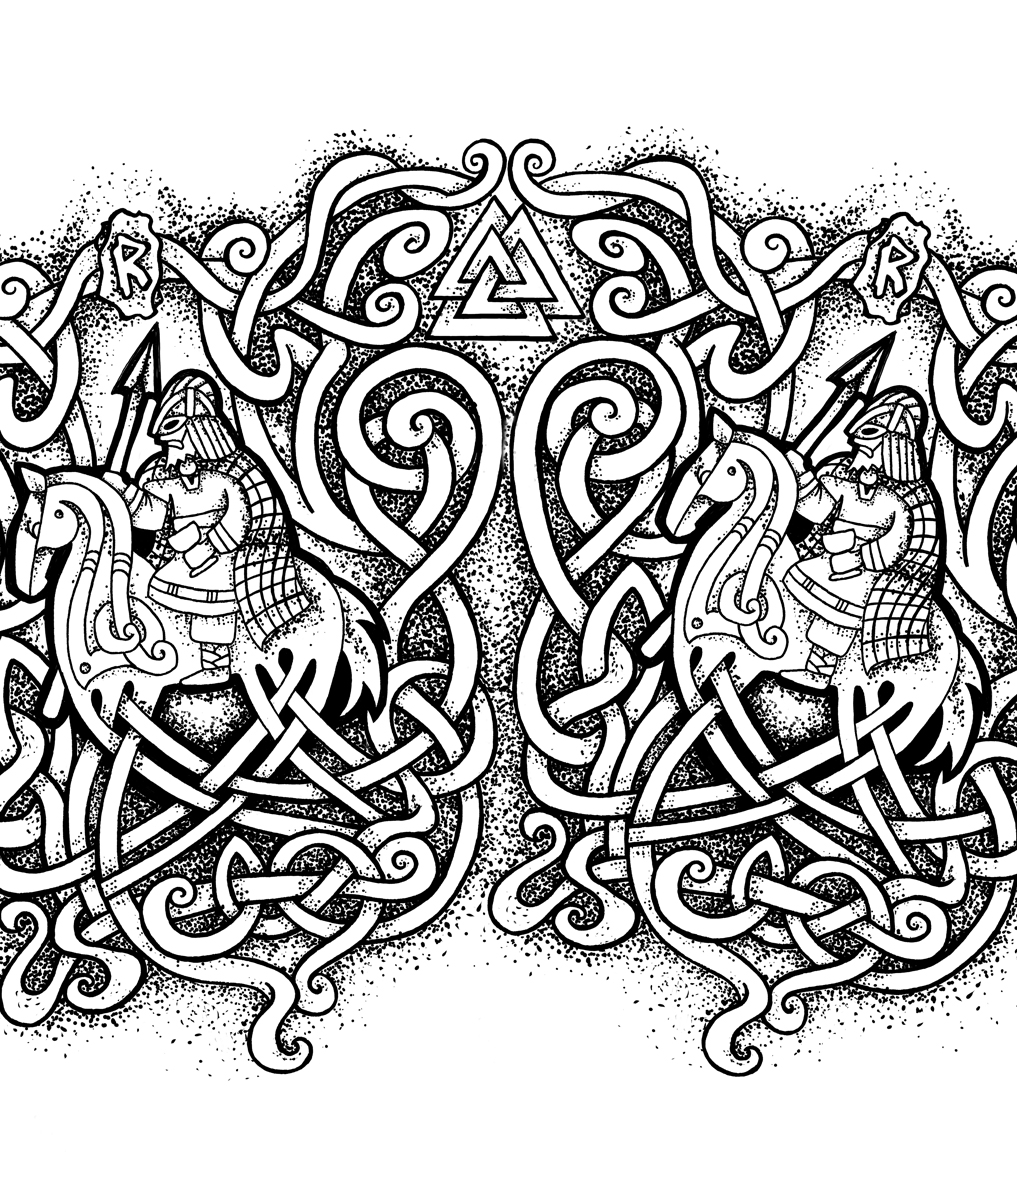 Odin and Sleipnir Tattoo Design with Valknut and Knotwork Motif - Wrap Around Sleeve Tattoo - Fineliner Pen Drawing by Imogen Smid